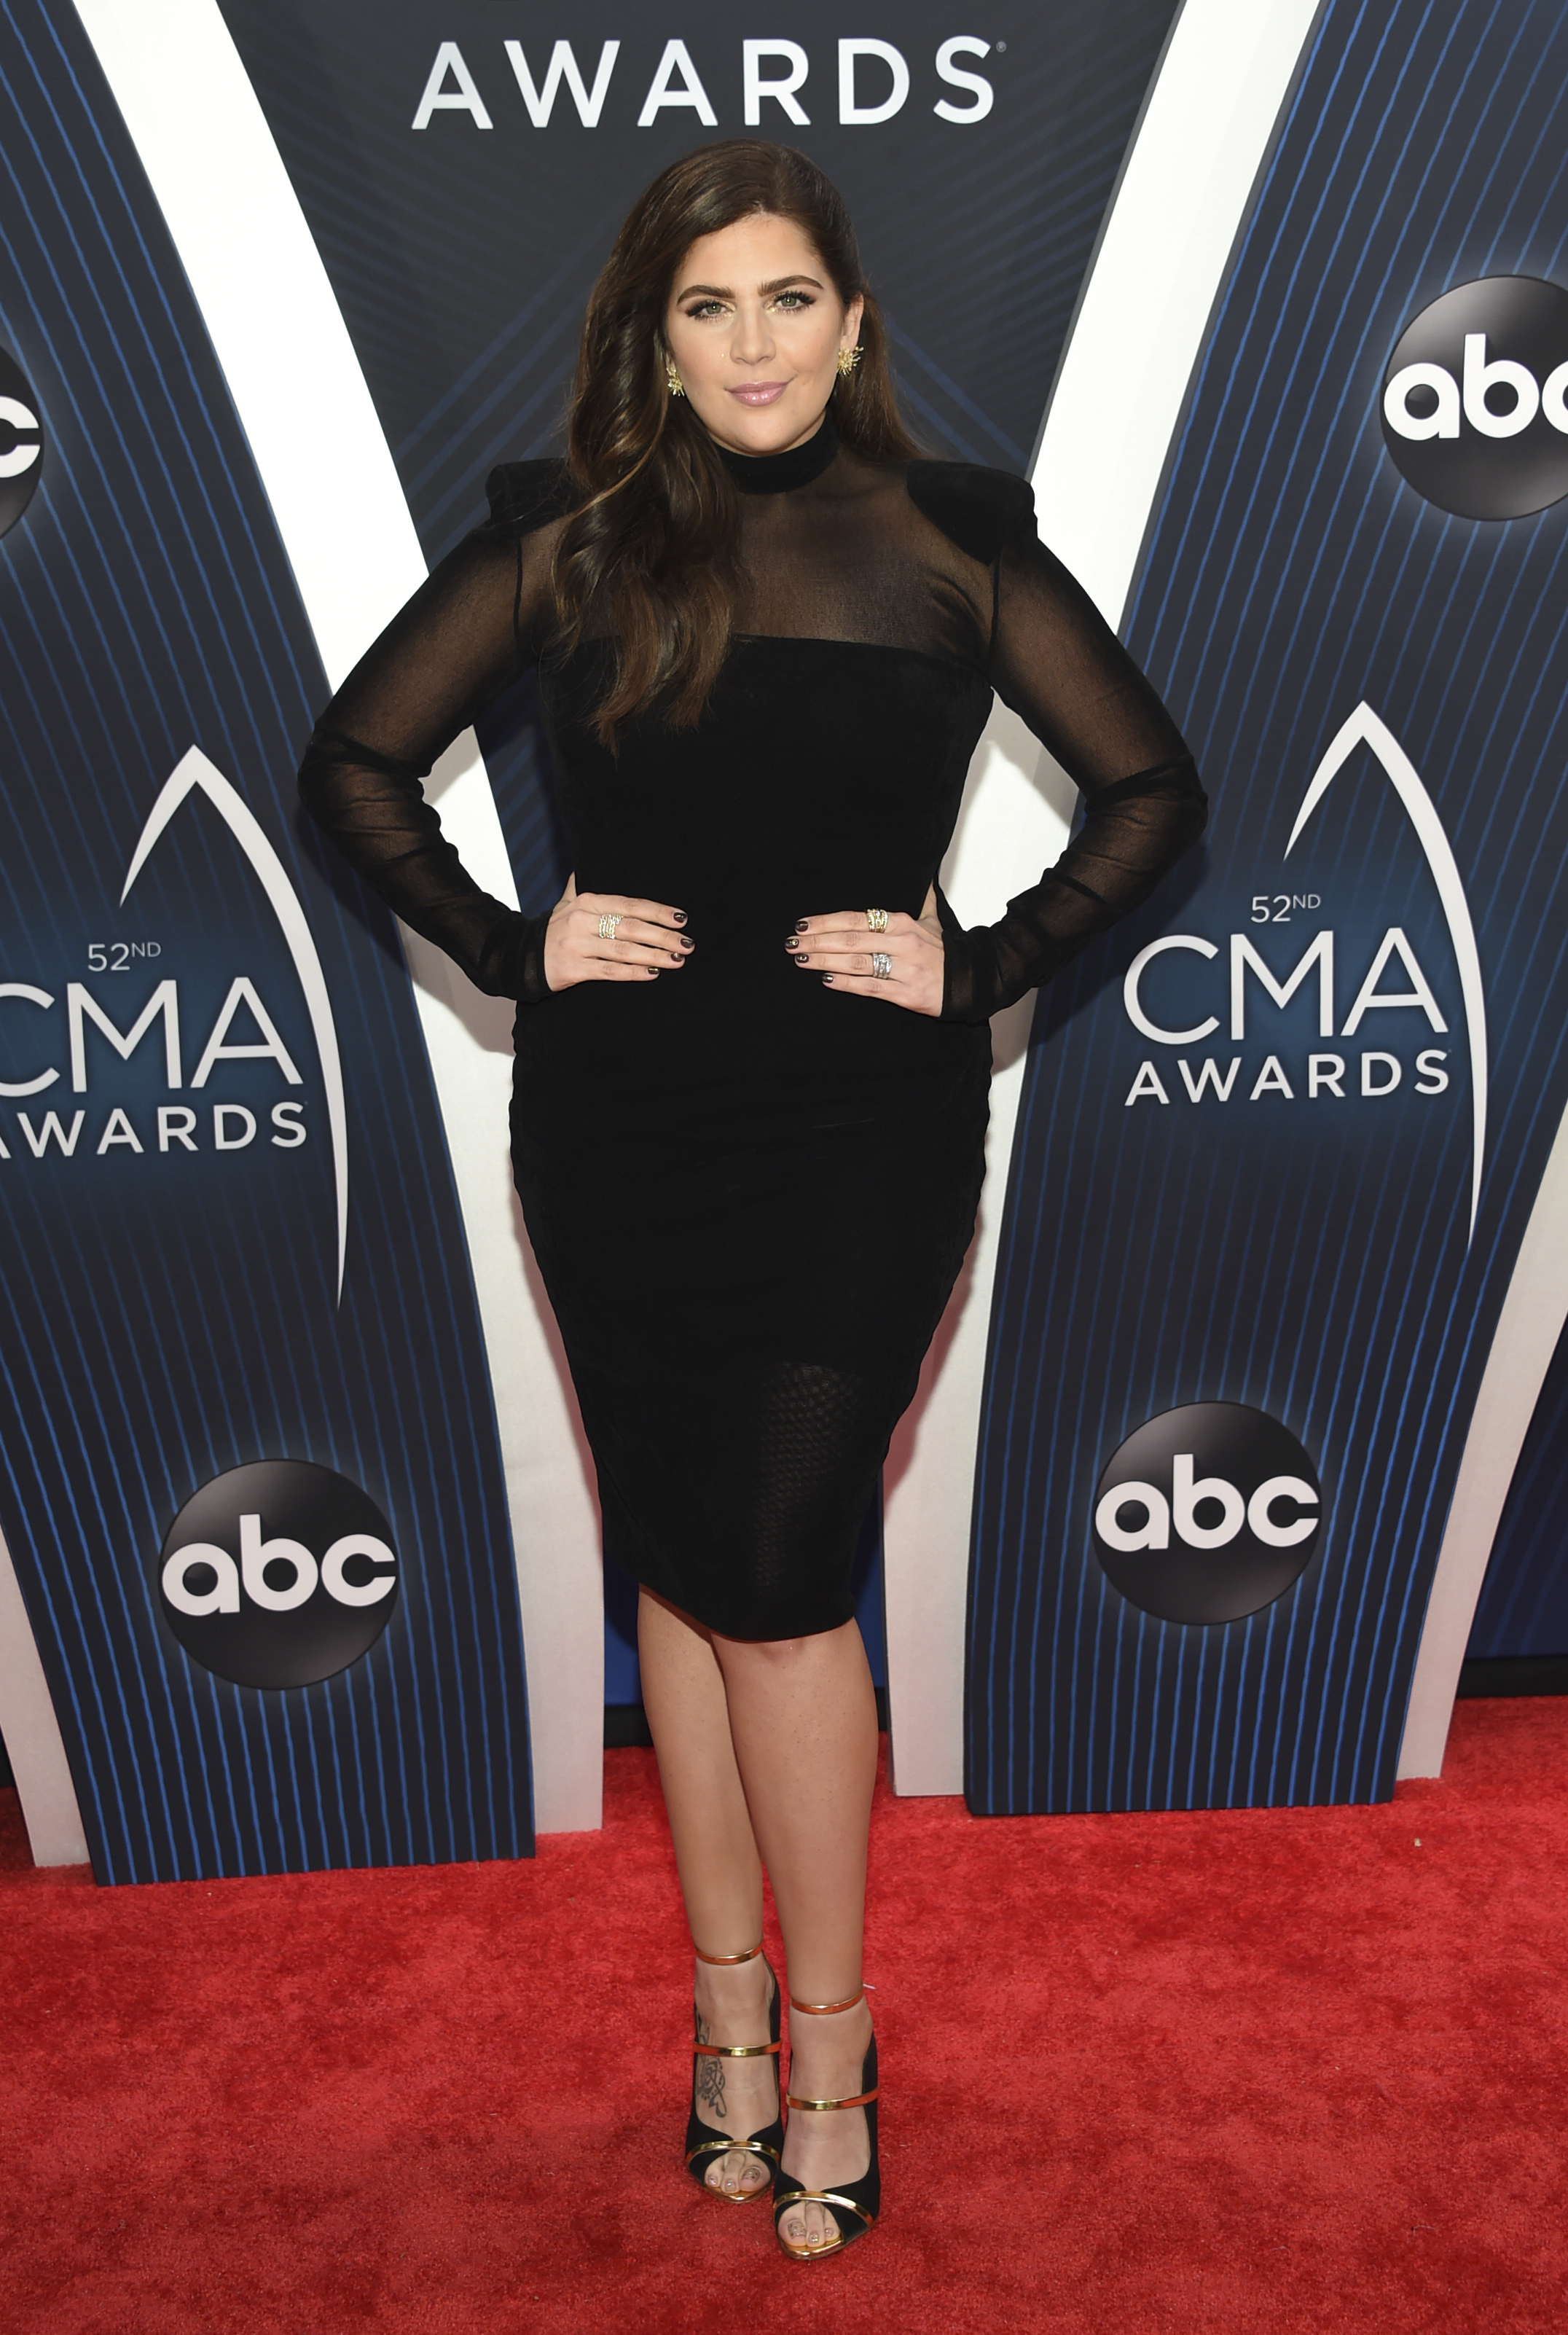 "<div class=""meta image-caption""><div class=""origin-logo origin-image ap""><span>AP</span></div><span class=""caption-text"">Hillary Scott of Lady Antebellum arrives at the 52nd annual CMA Awards at Bridgestone Arena on Wednesday, Nov. 14, 2018, in Nashville, Tenn. (Photo by Evan Agostini/Invision/AP) (Evan Agostini/Invision/AP)</span></div>"